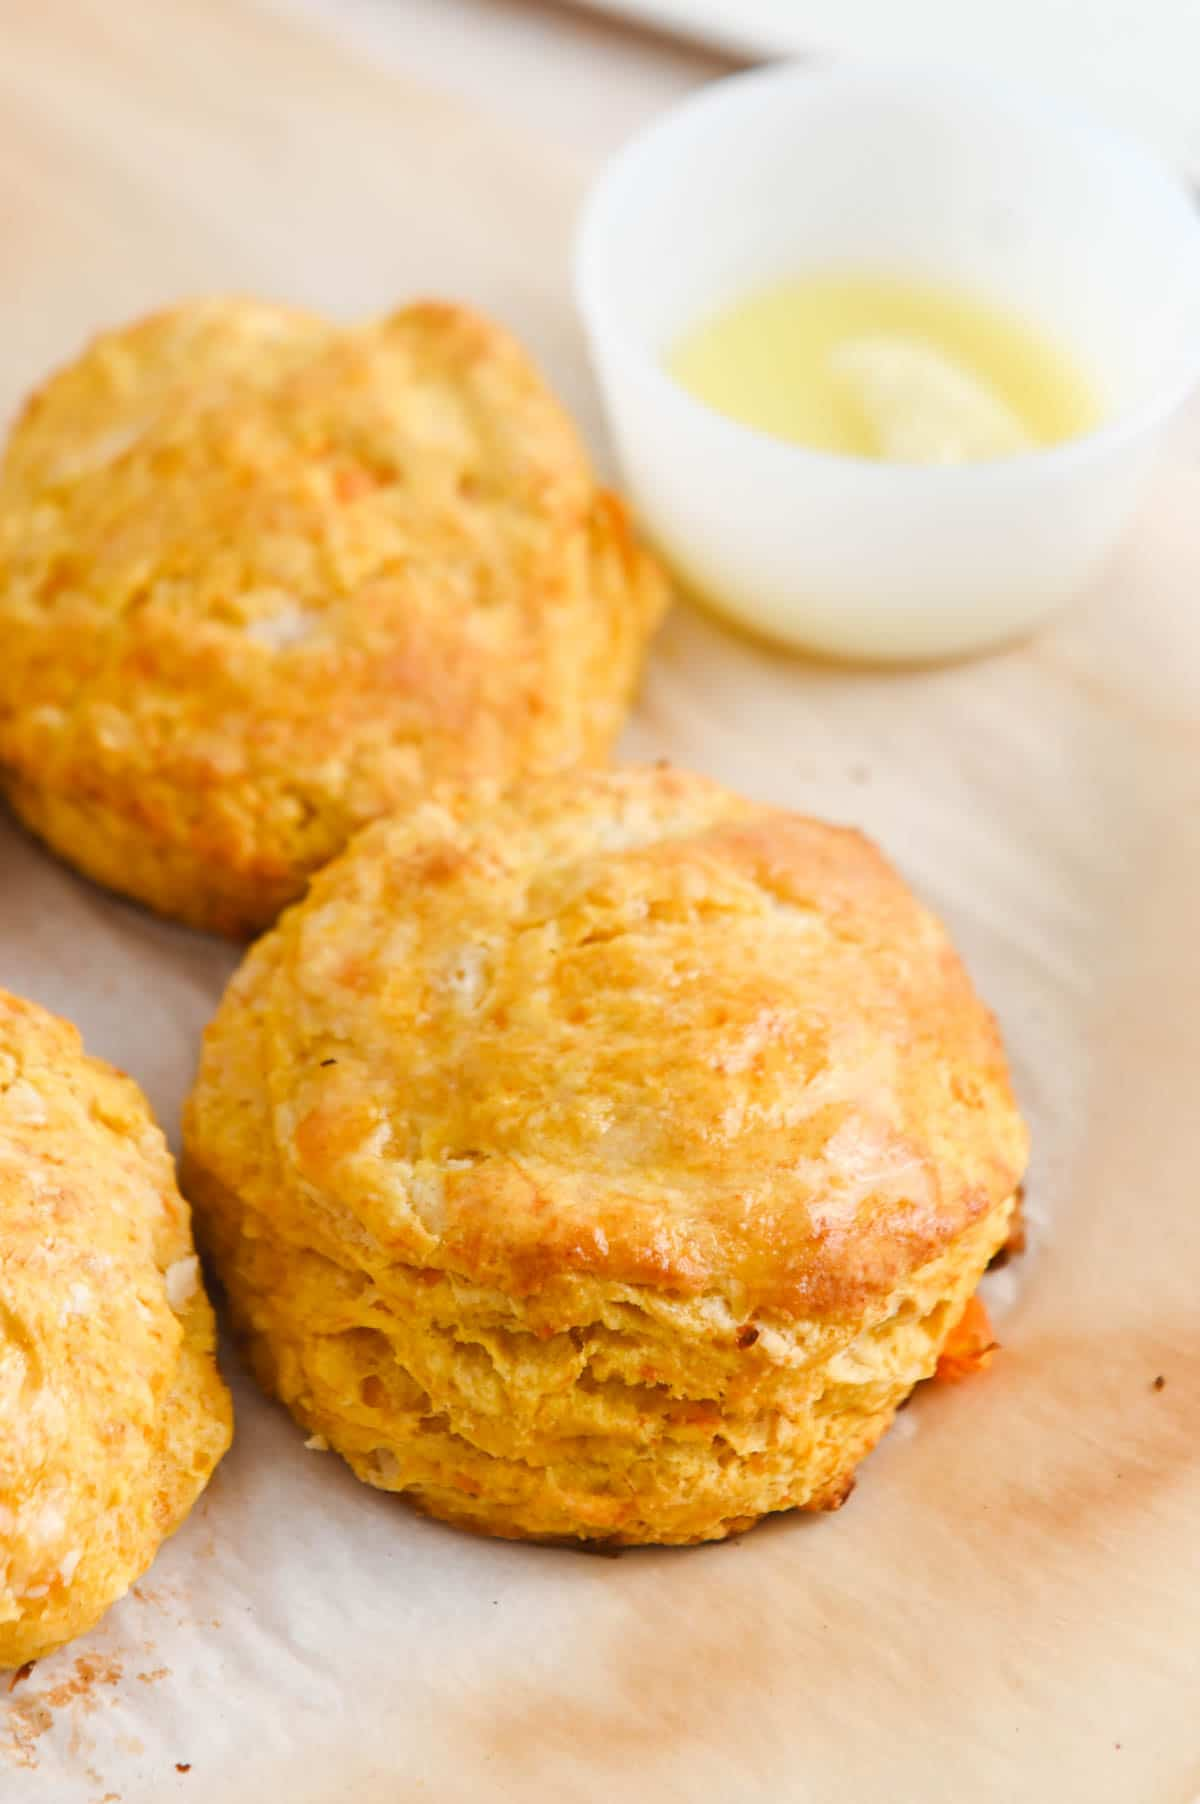 Sweet potato biscuit on parchment paper with another biscuit and white bowl in the background